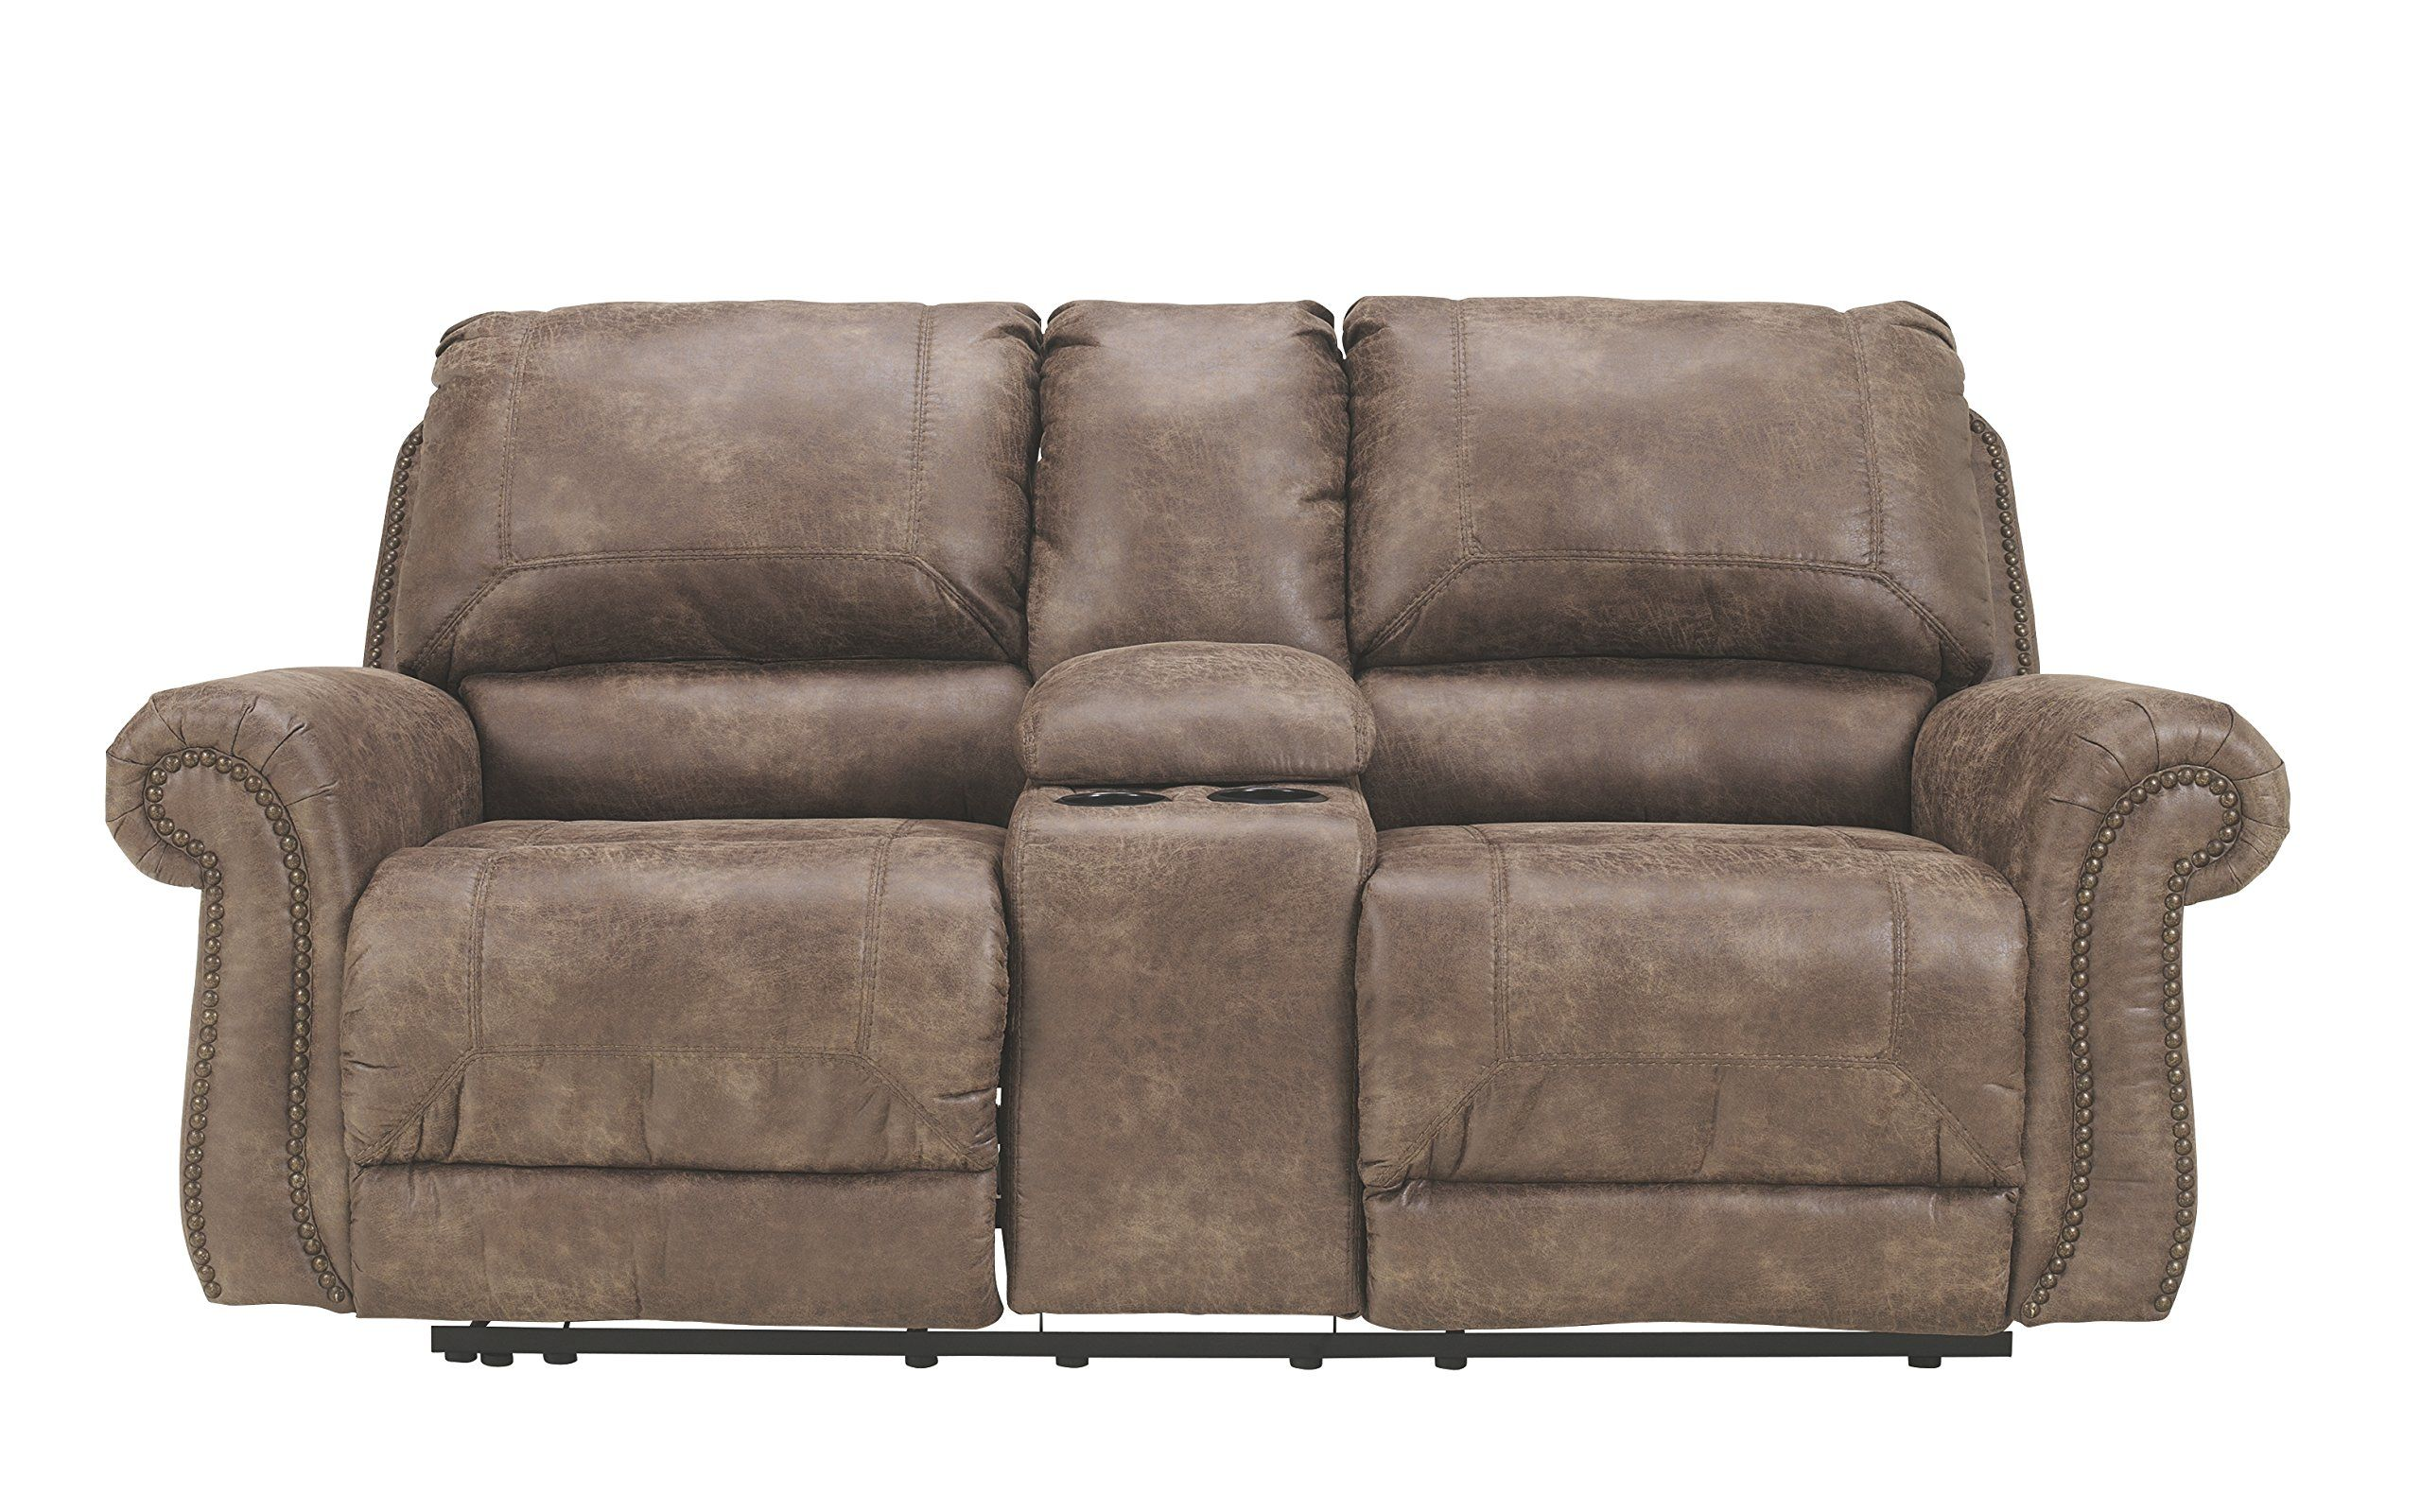 Ashley Furniture Signature Design Oberson Recliner Loveseat with